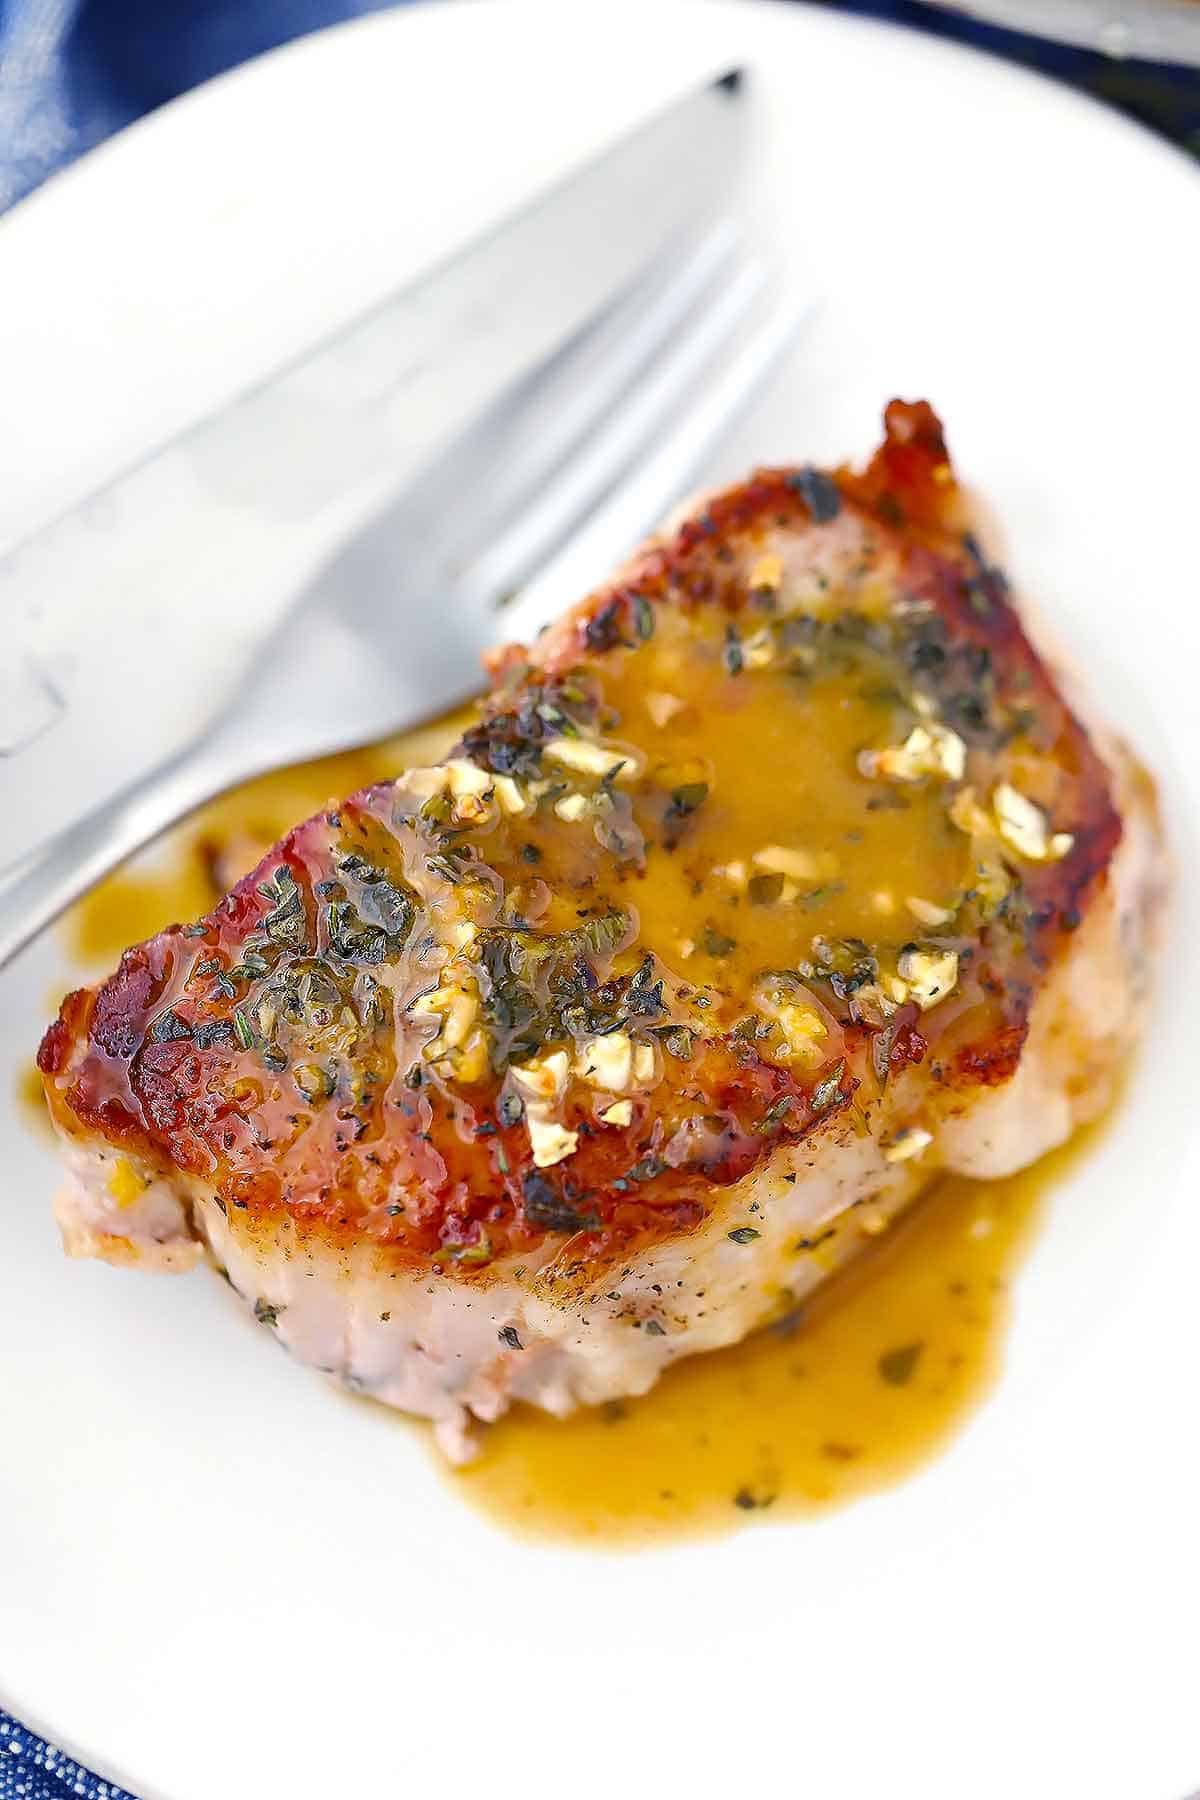 A seared oven baked pork chop on a plate with pan sauce.